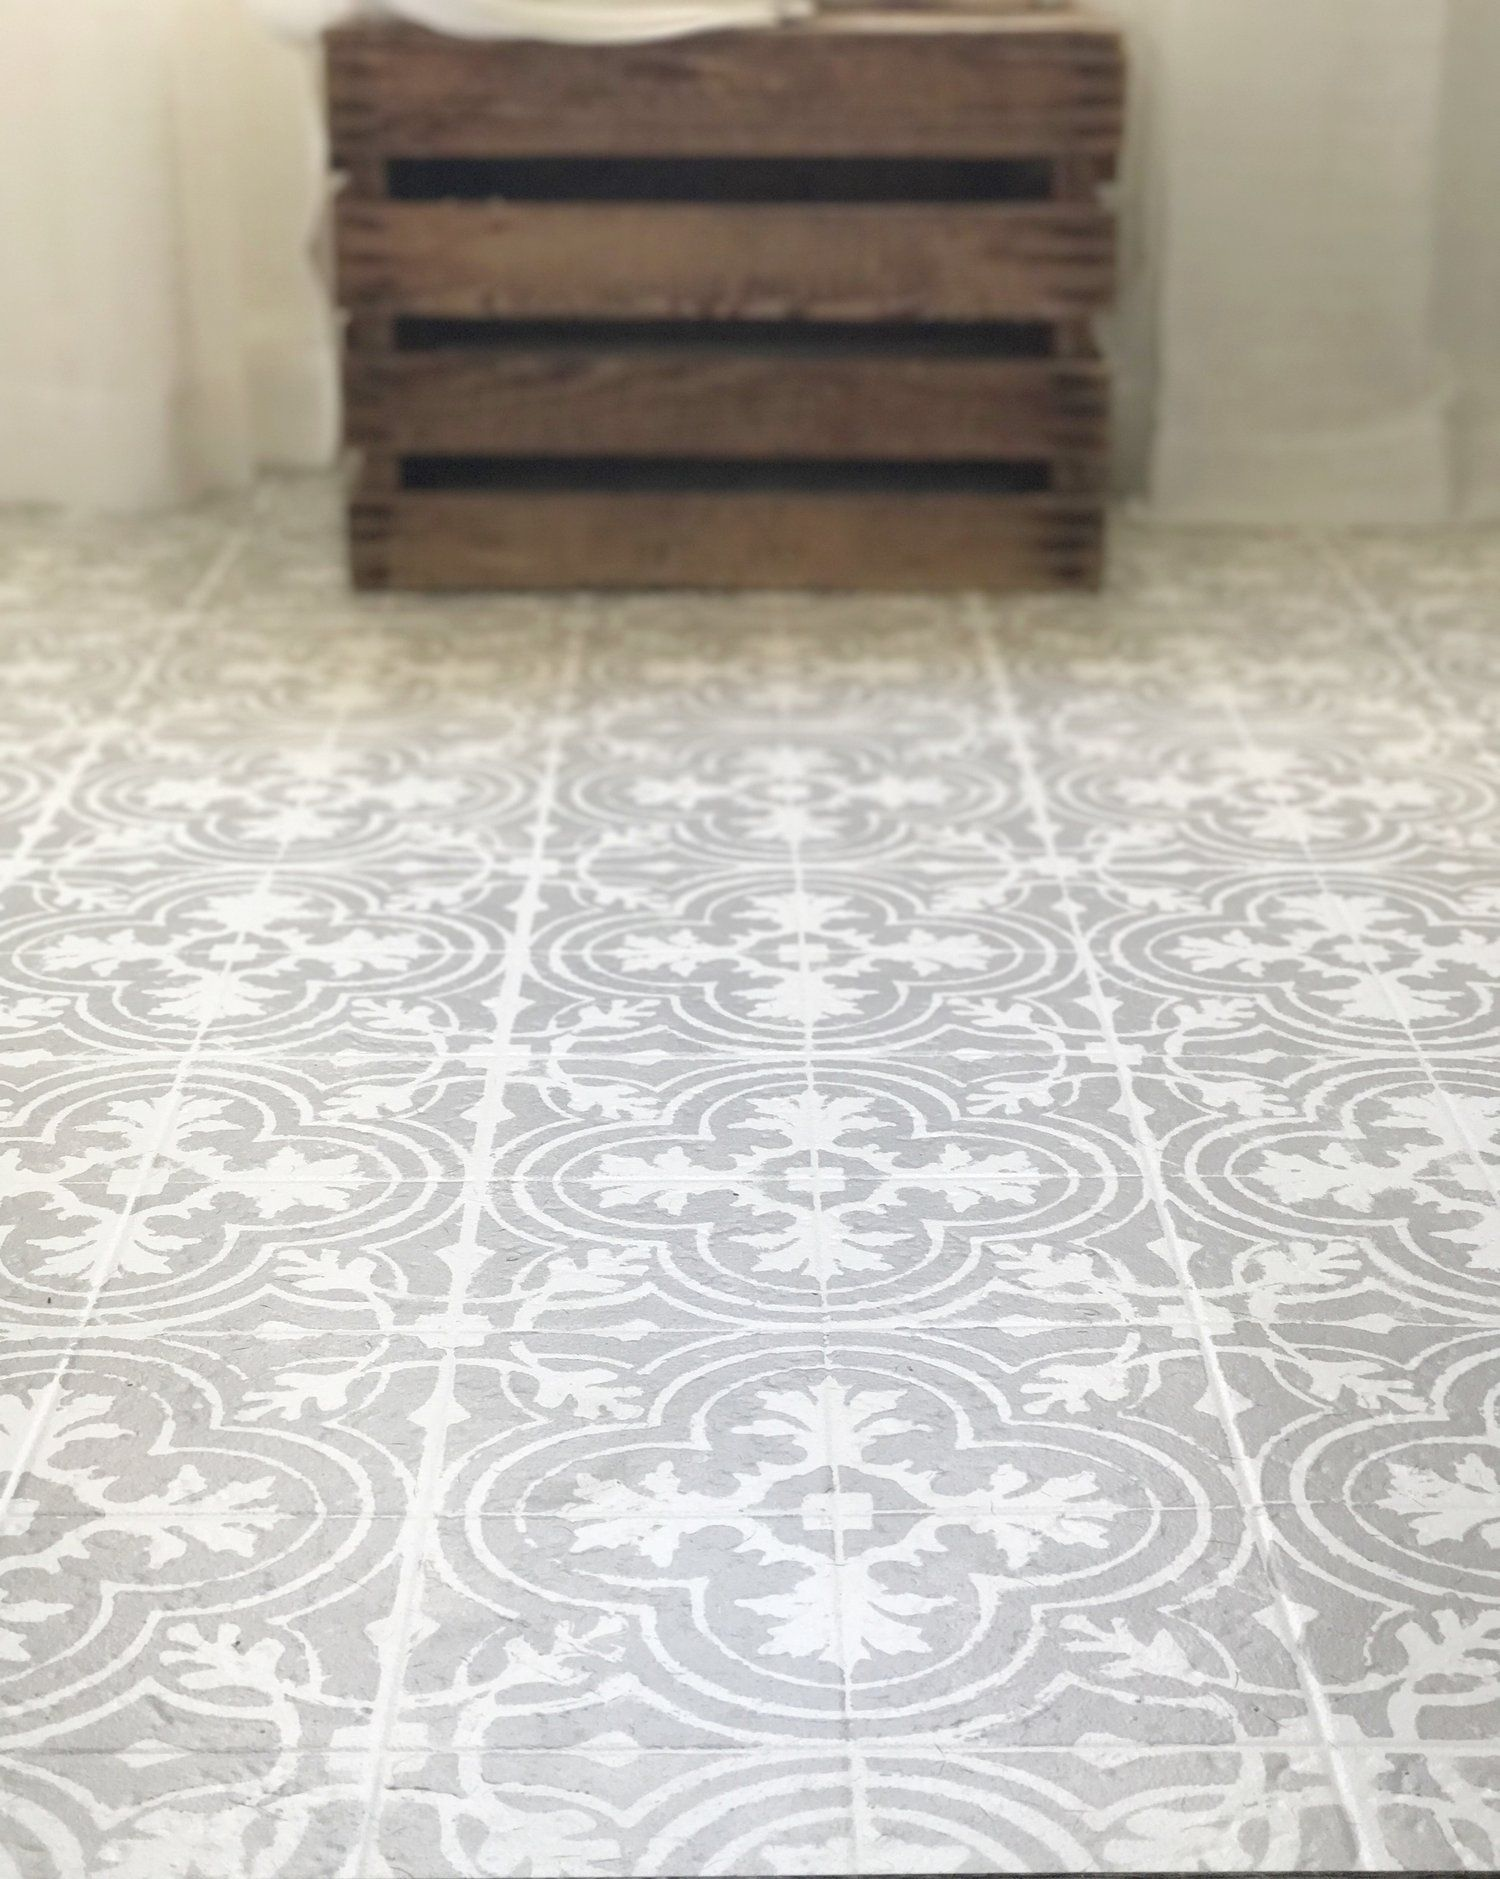 How To Paint Your Linoleum Or Tile Floors To Look Like Patterned - Ceramic tile that looks like cement tile